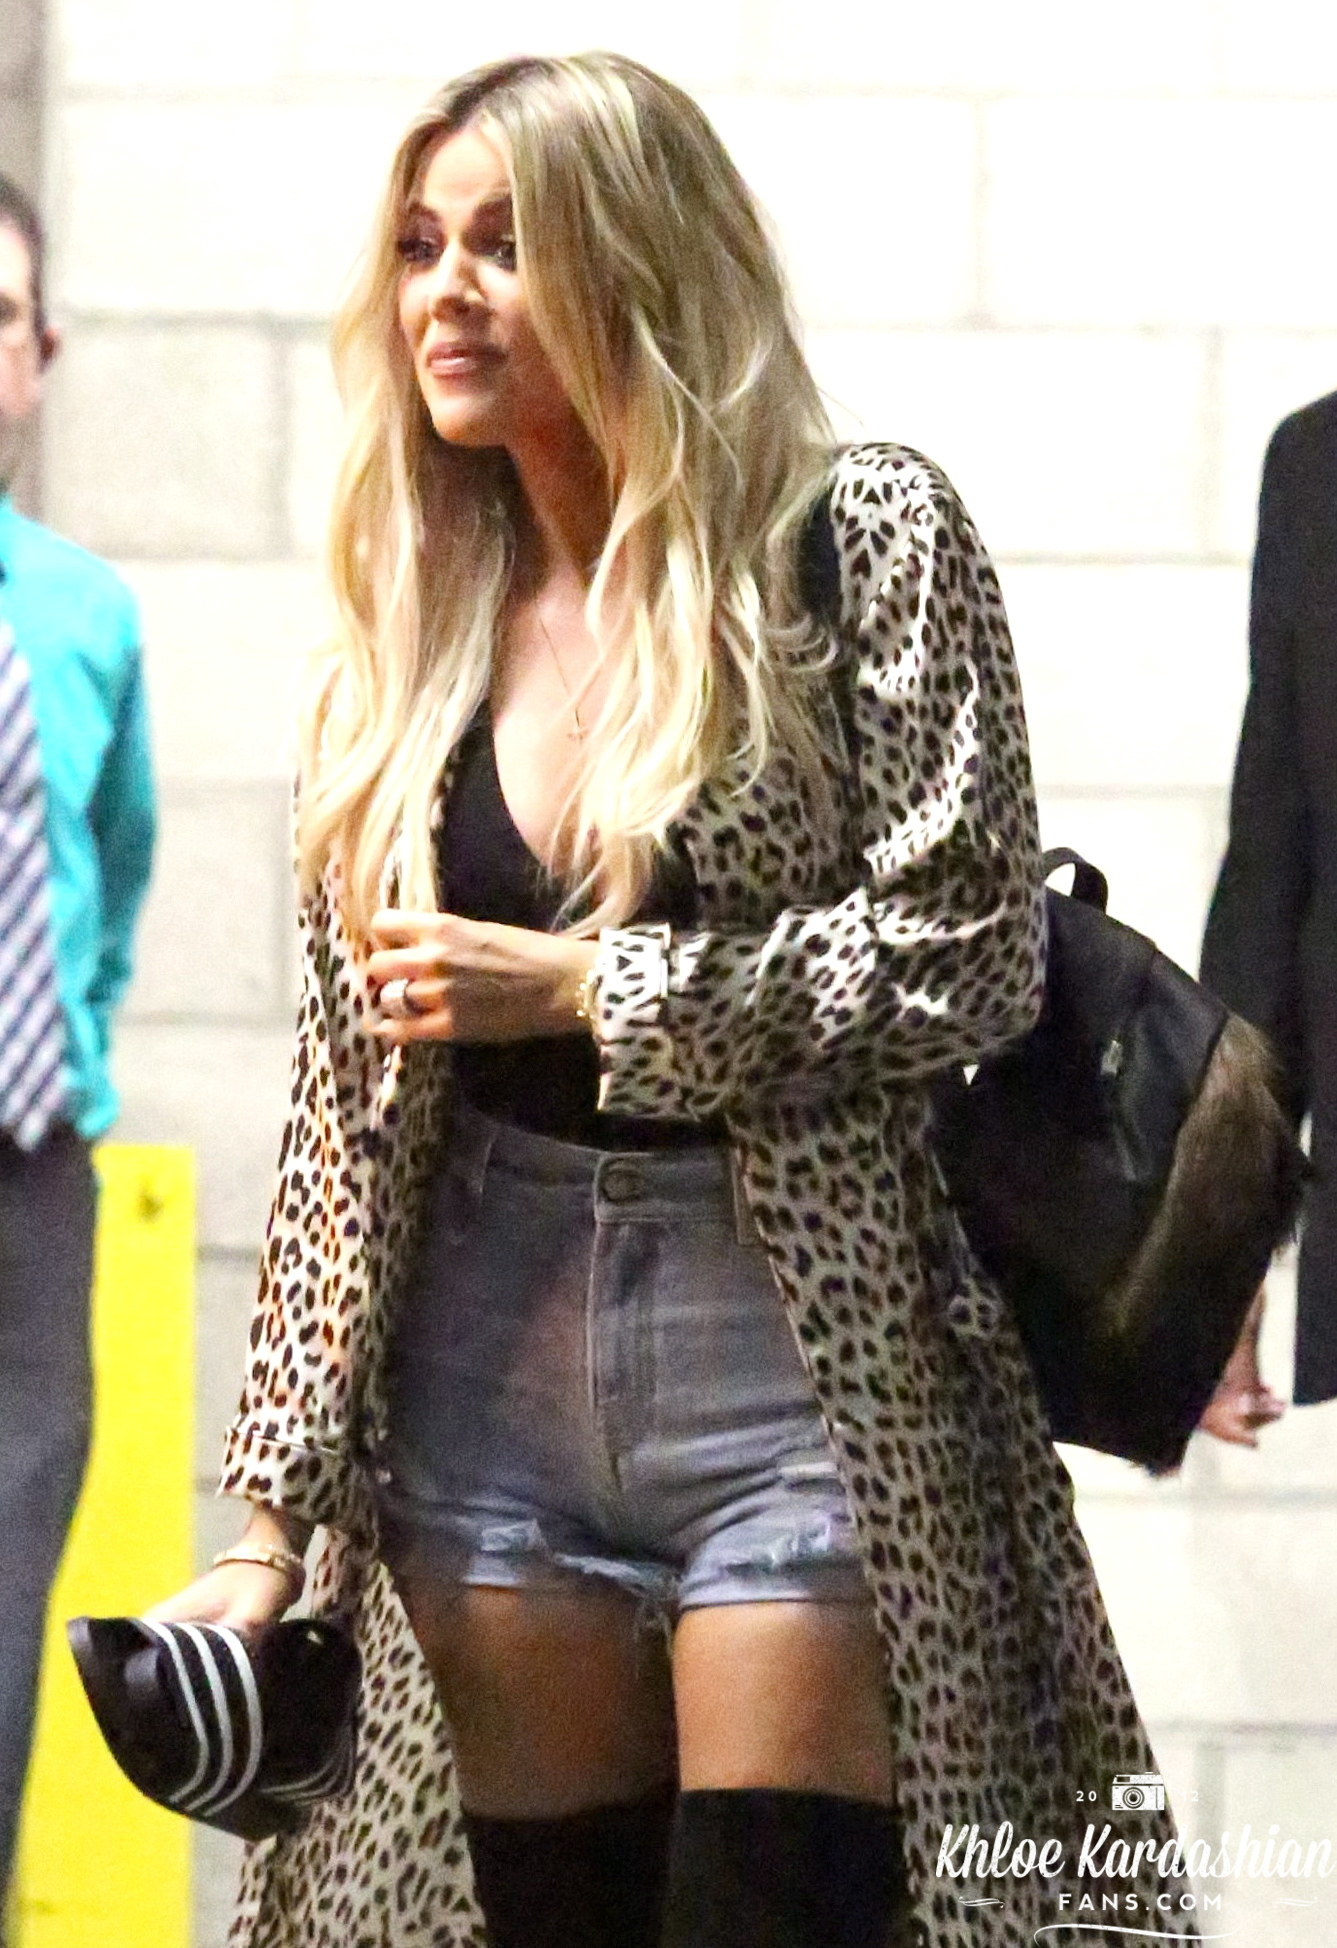 (PHOTOS) June 27, 2016: Khloé arrives at Dave & Buster's